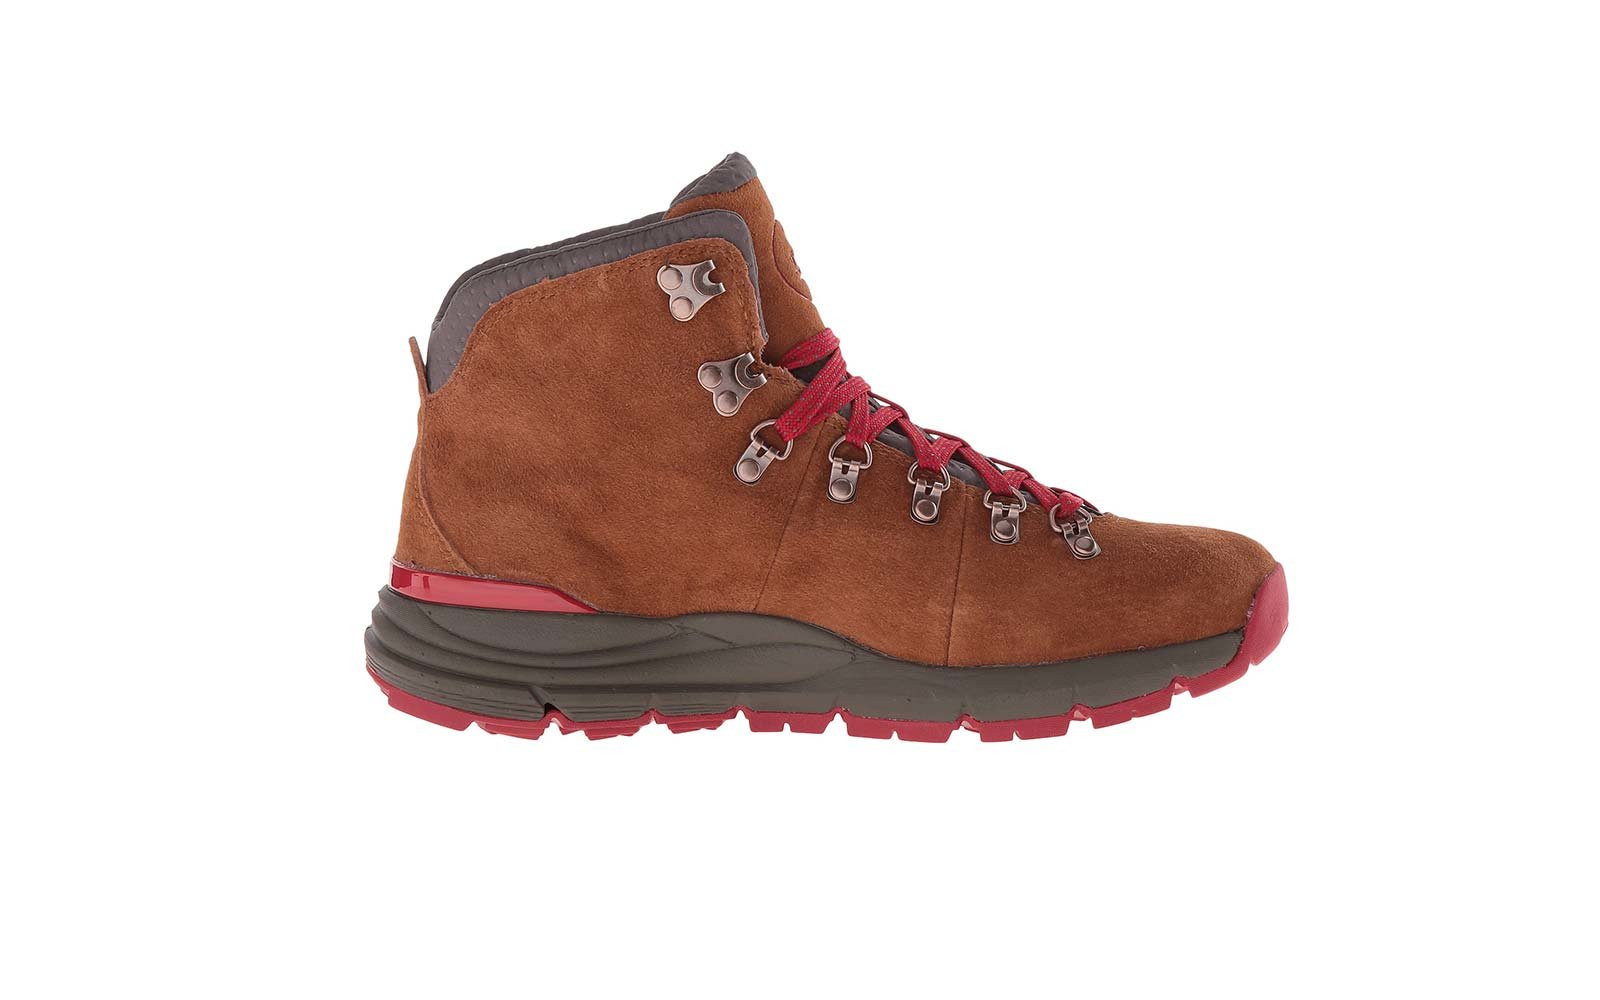 Danner Female Hiking Boots